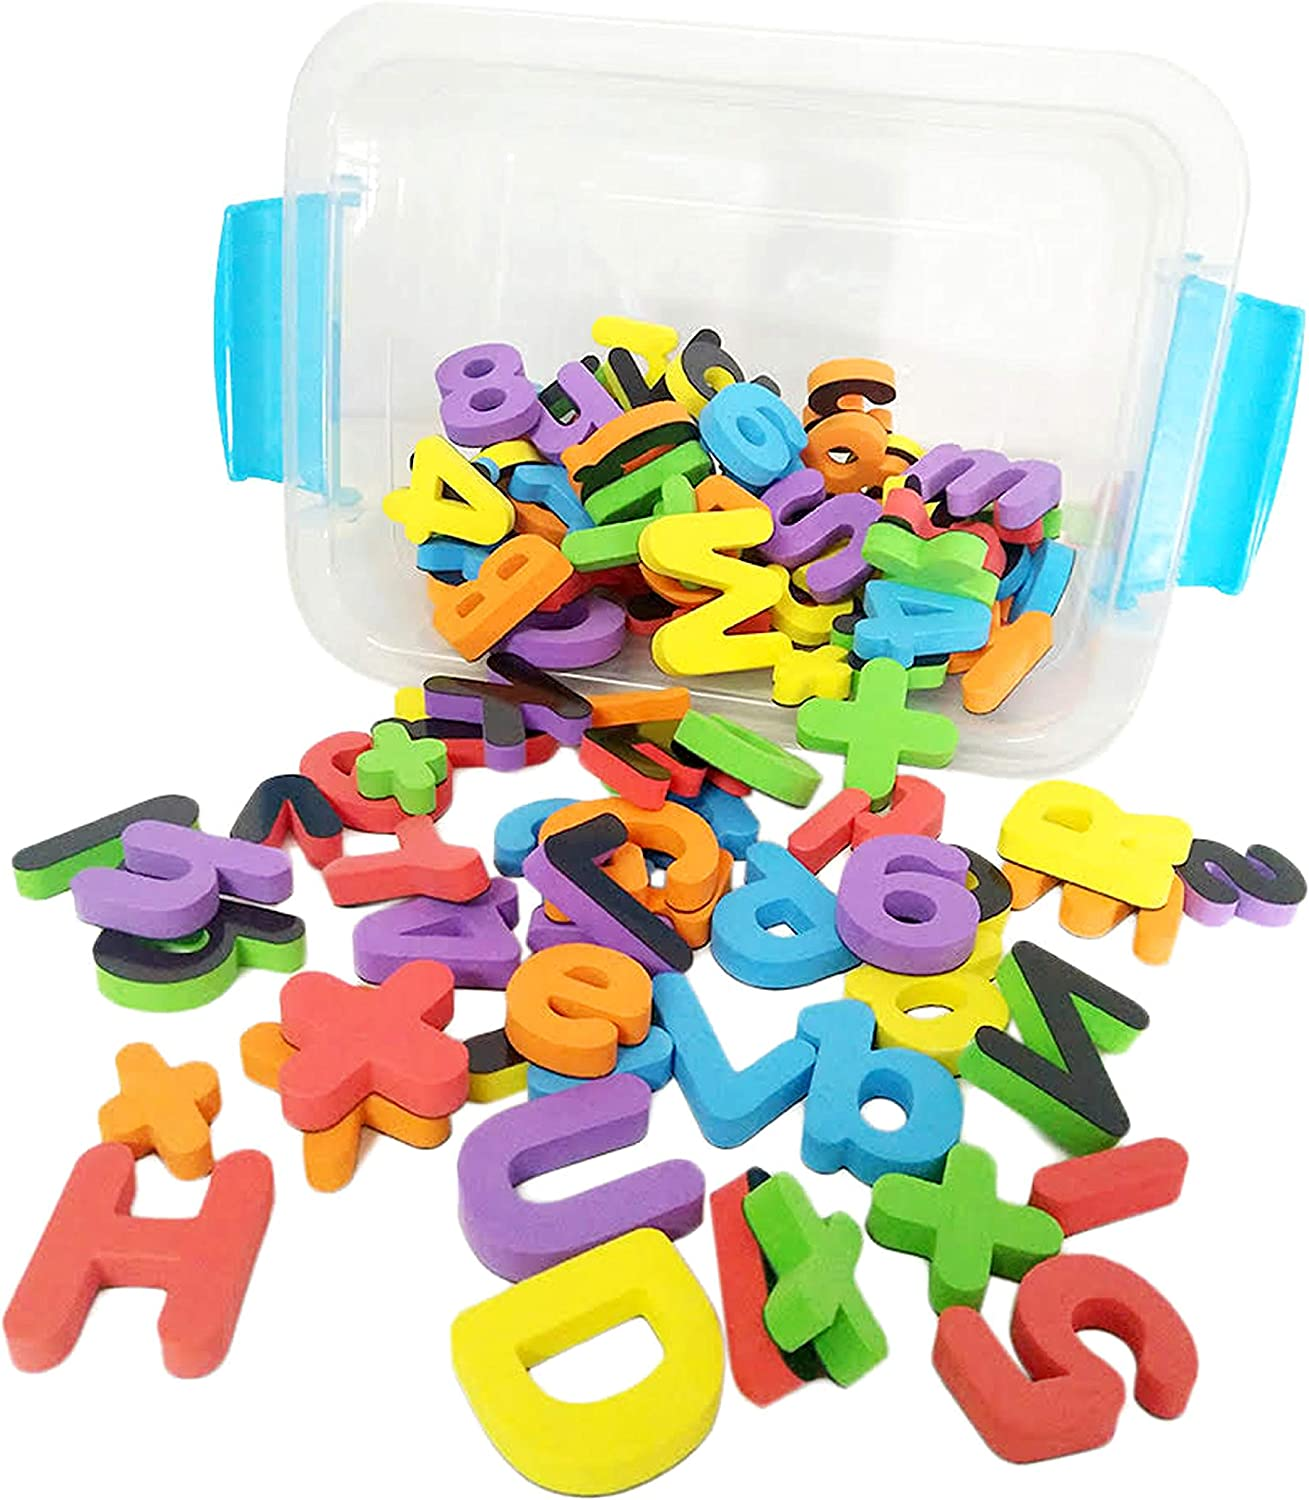 Deke 123 Pieces Magnetic Fridge/Refrigerator Foam Letters (ABC) Numbers and Symbols. Premium Large Foam Magnet Alphabet Number Magnets.for Kids Toddlers Preschool Letter Learning Spelling in Canister